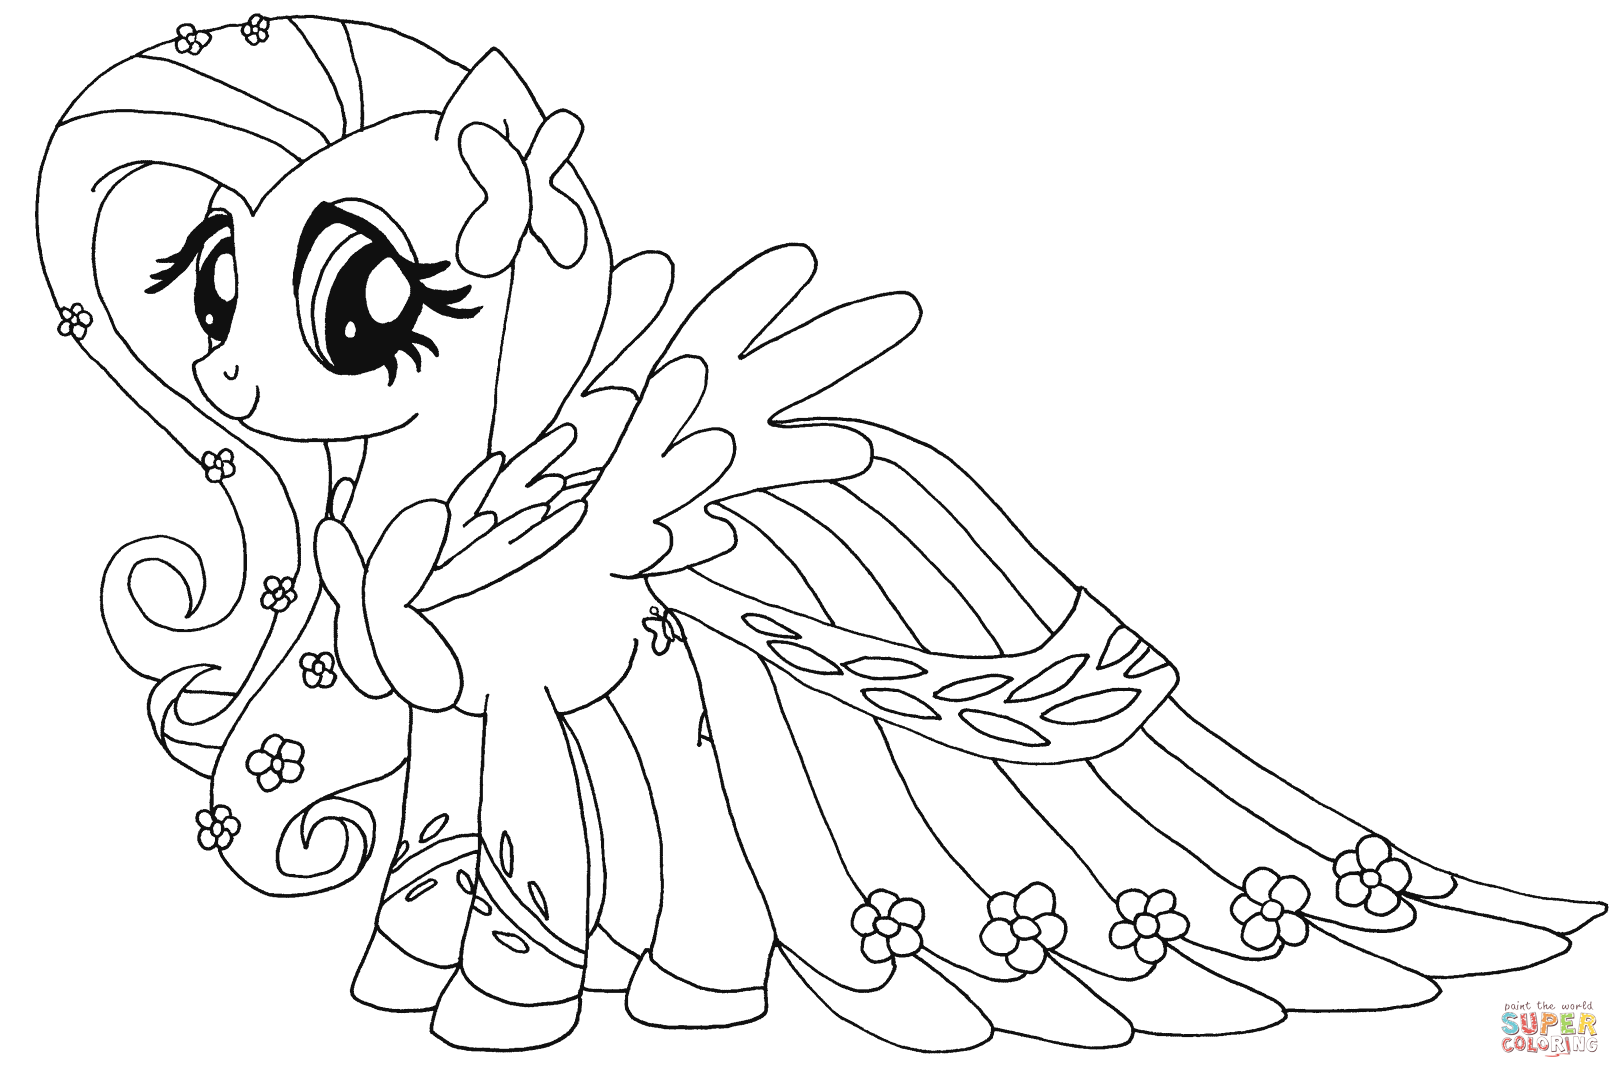 mlp printouts free printable my little pony coloring pages for kids printouts mlp